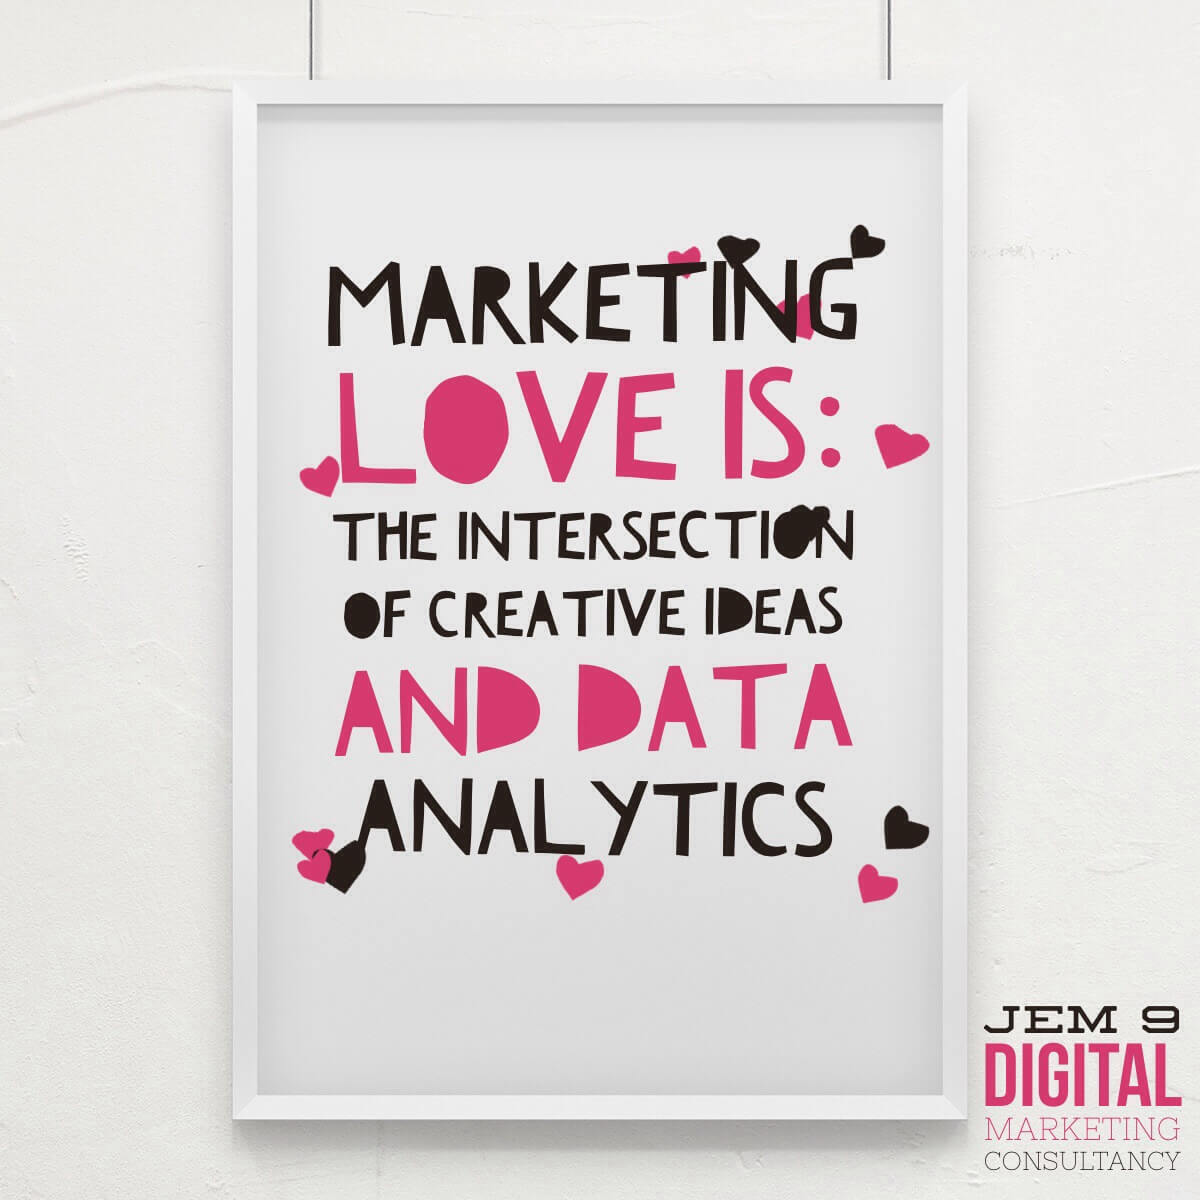 MarketingInspiration from JEM 9: marketing love is: the interaction of creative ideas with data analytics. Visit JEM9.com